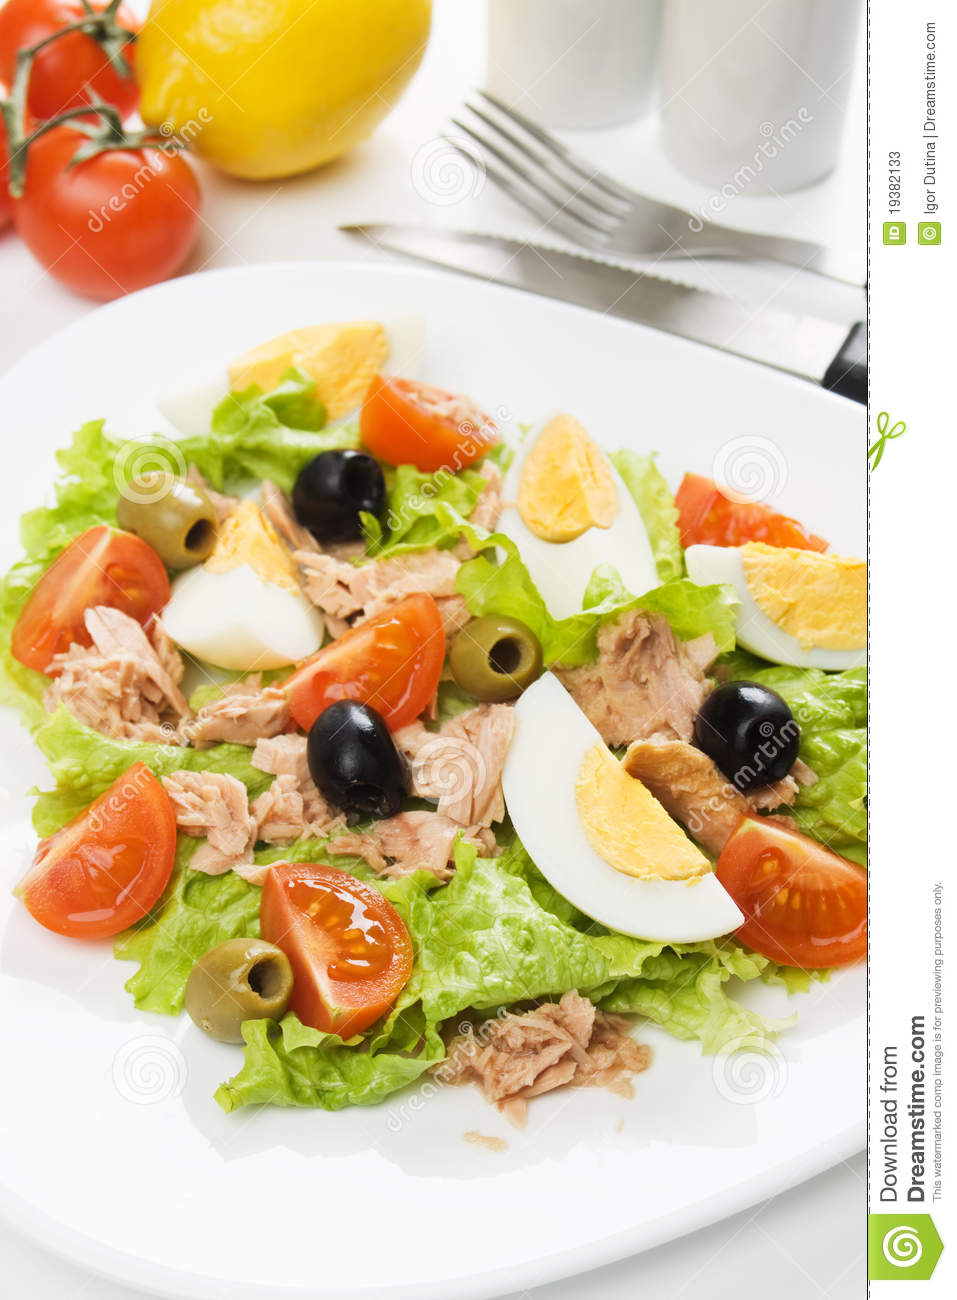 Hard boiled egg salad with tuna meat, tomato, lettuce and olives.